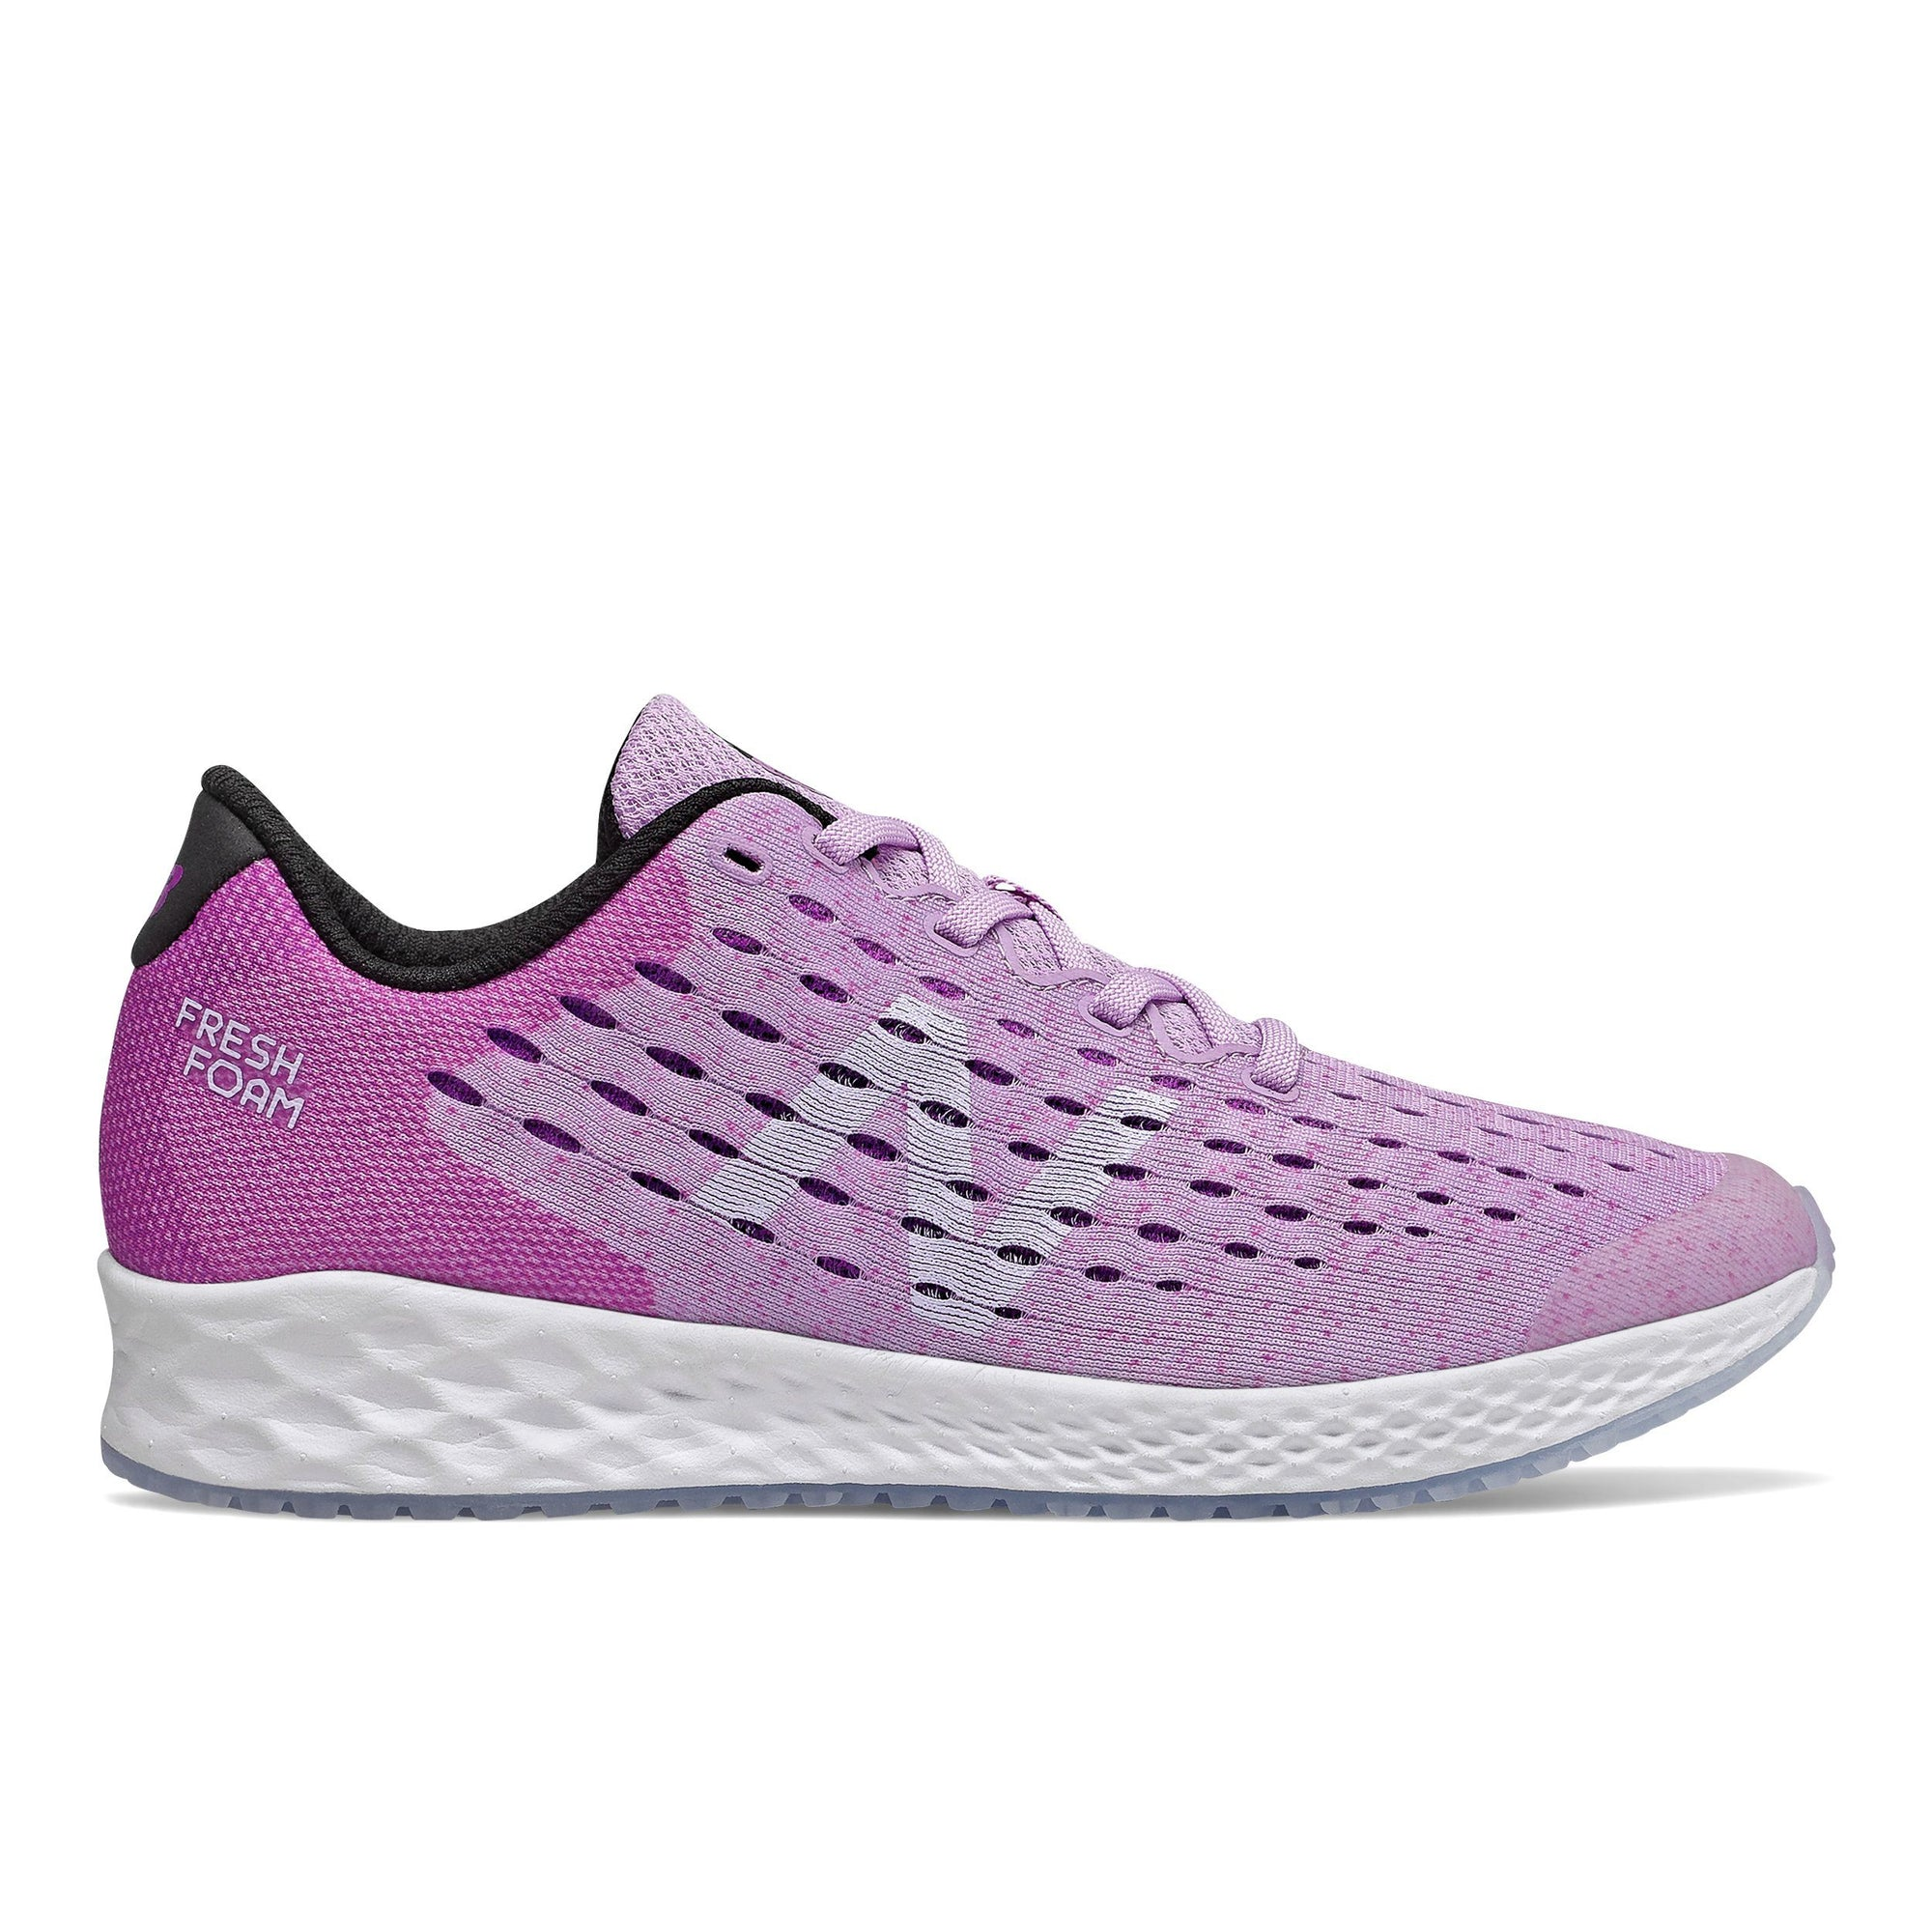 New Balance Kids Fresh Foam Zante Pursuit - Dark Violet SP-Footwear-Kids New Balance